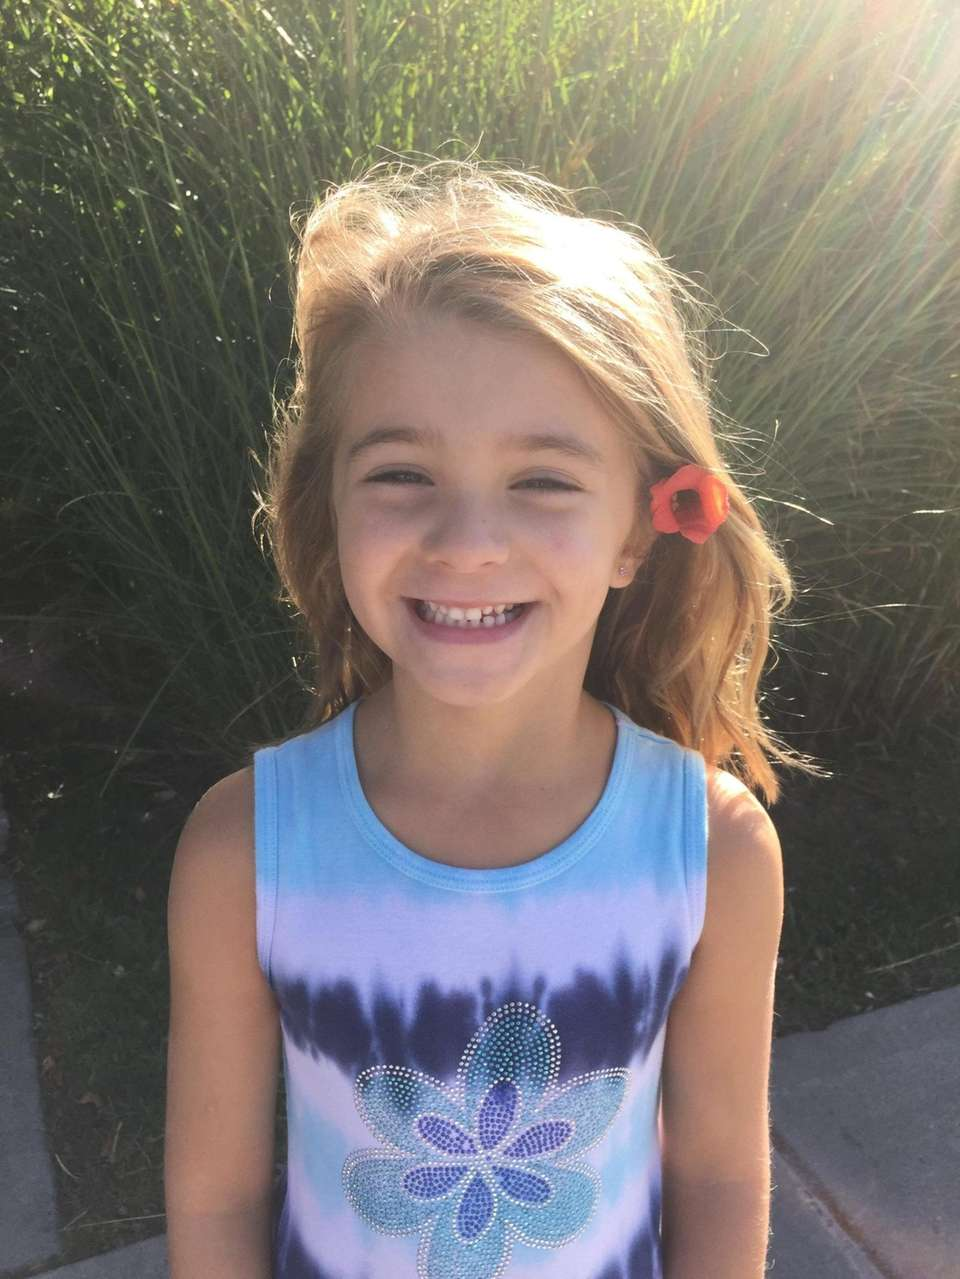 Paige Keely, 6, of Nissequogue Village and Kismet